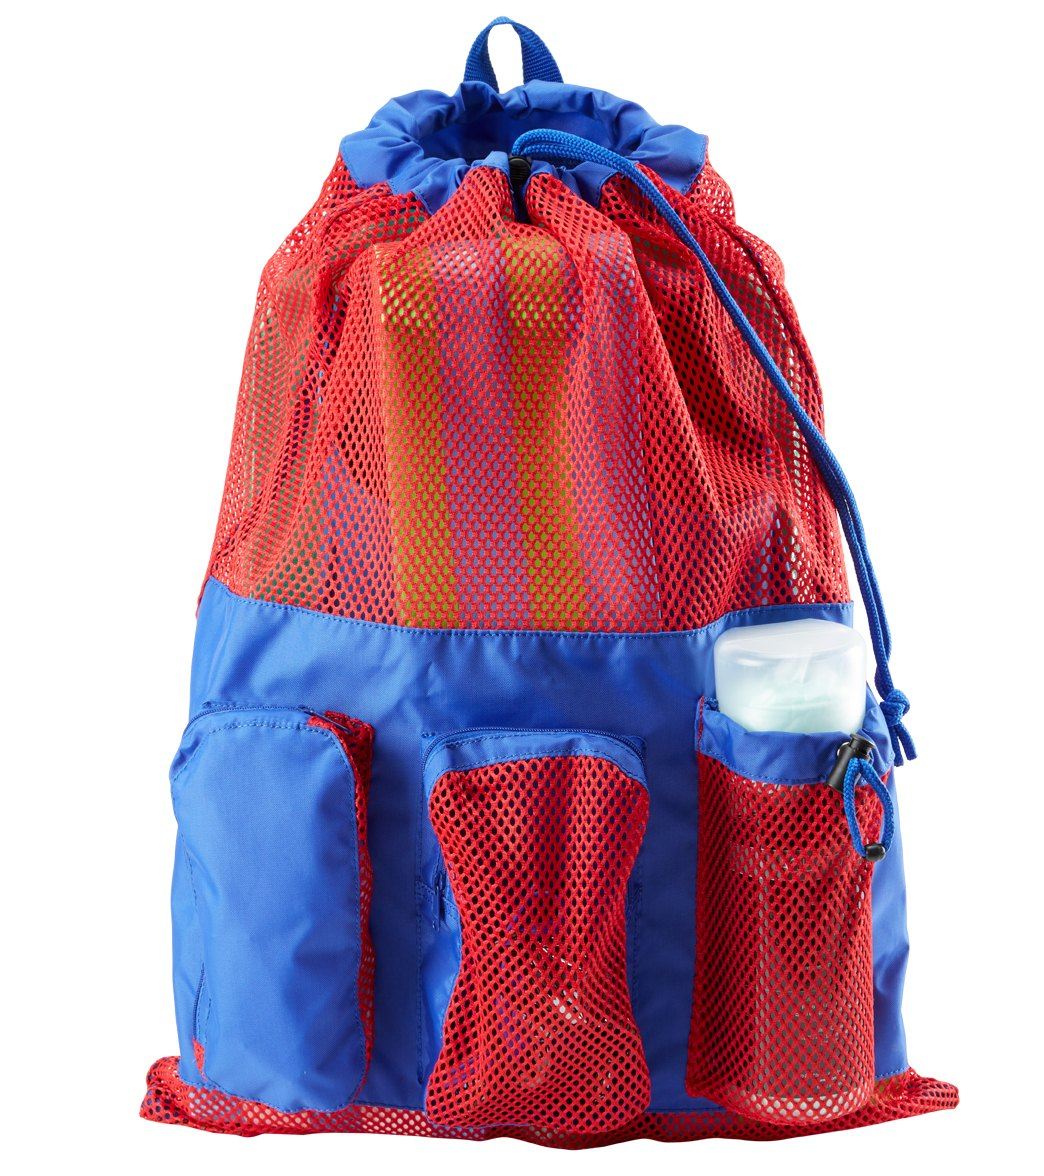 e27846dd33 Sporti Equipment Color Block Mesh Backpack at SwimOutlet.com